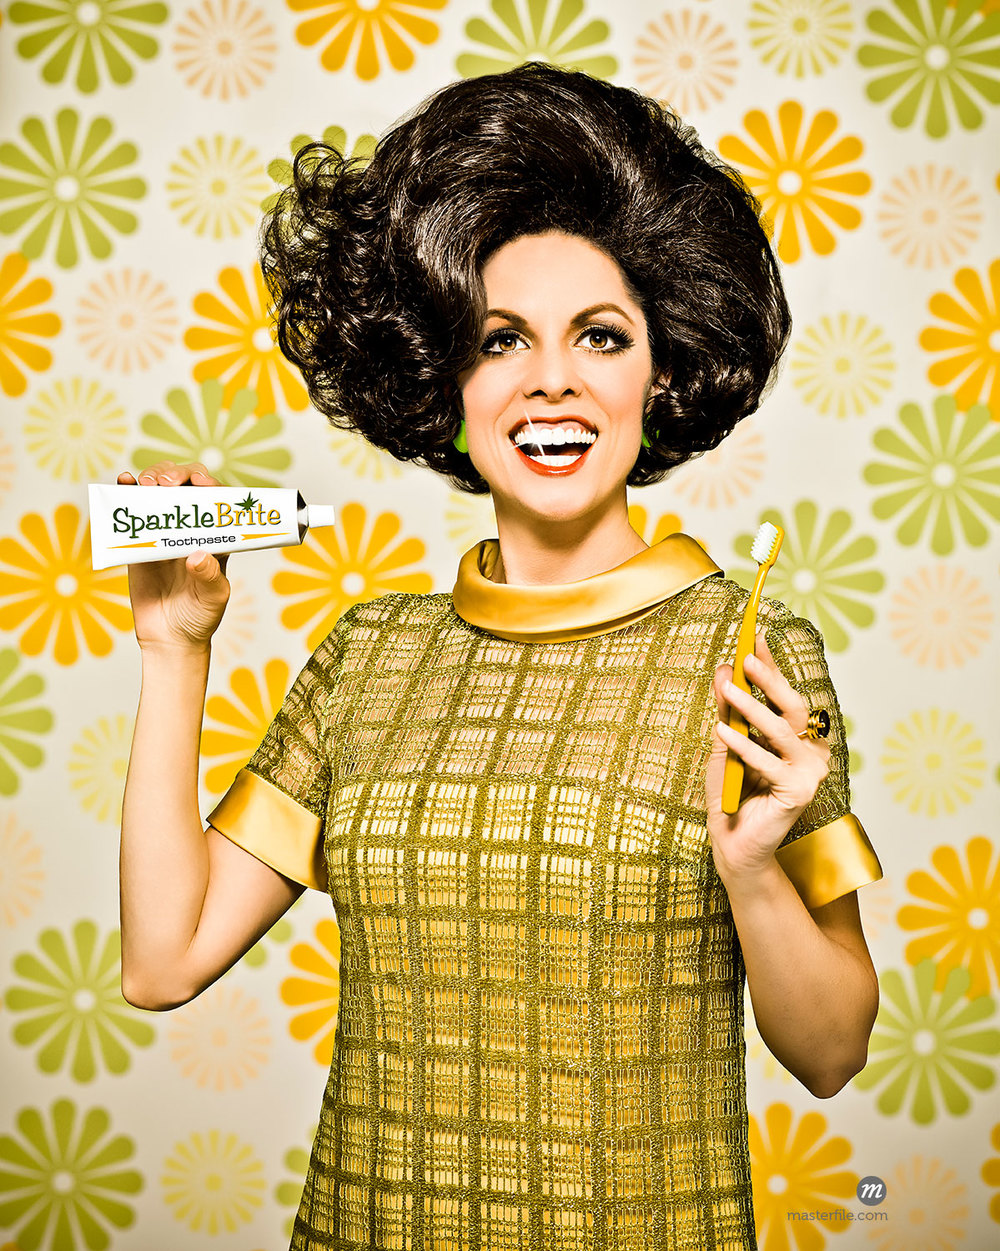 Woman in 1960's dress against 1960's flower wallpaper holding a toothbrush and tube of fictional toothpaste with a big smile and a sparkle on one tooth © Dana Hursey / Masterfile